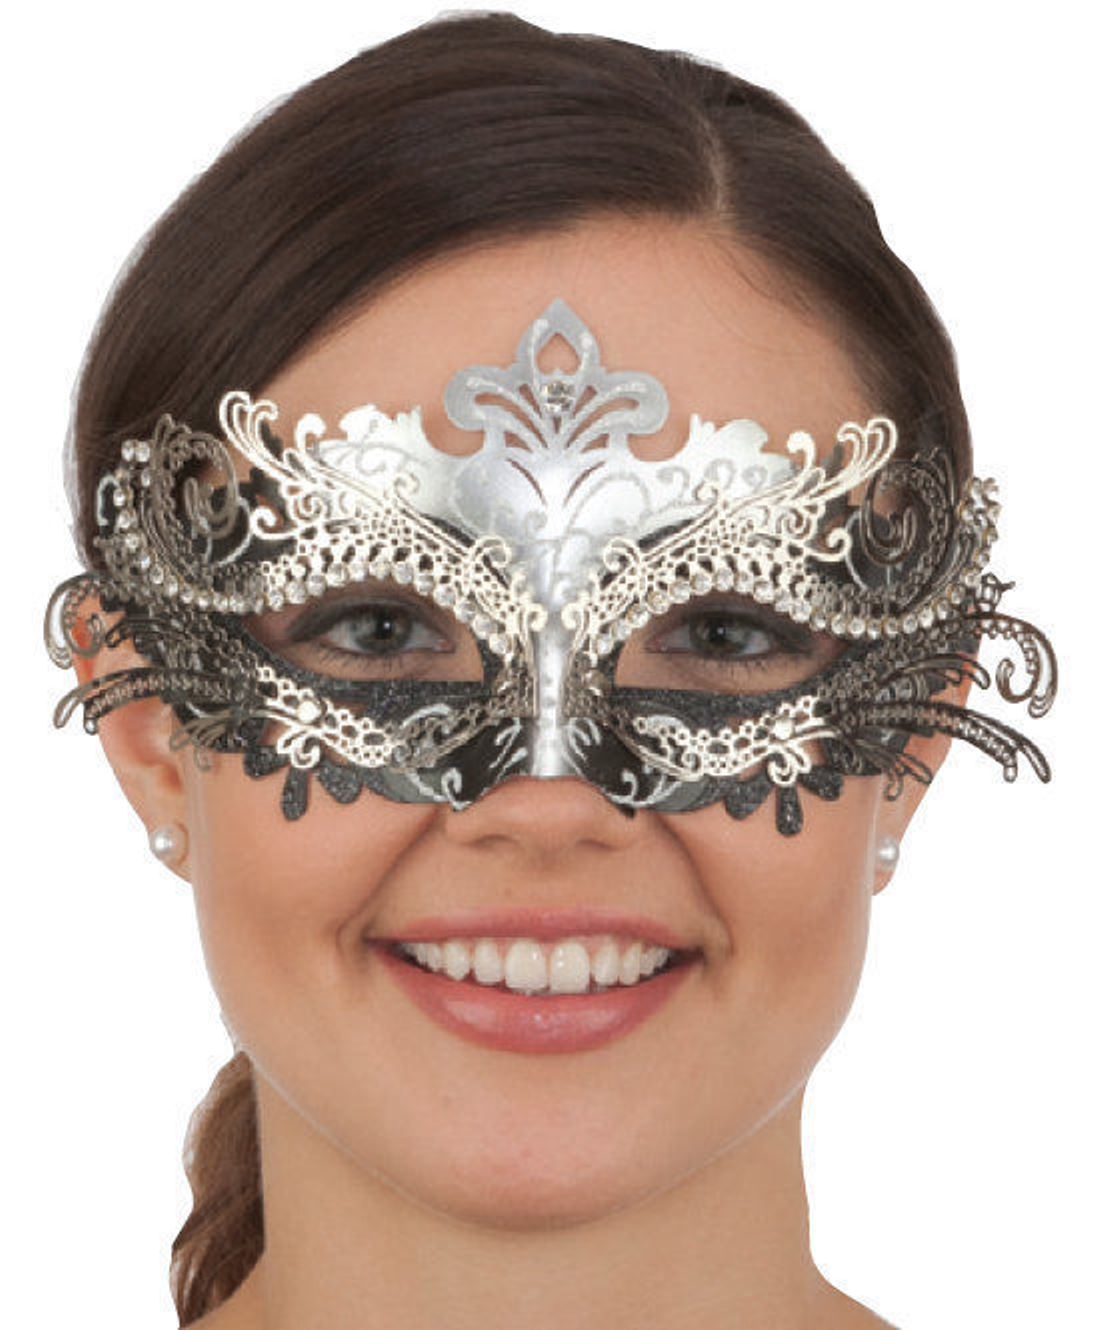 Shop Fun Express for wholesale & bulk Mardi Gras Masks while saving at least 20%. At Fun Express you can find Mardi Gras mask connectors, feather masks, felt masks and more. When it comes to fun, we're all business.